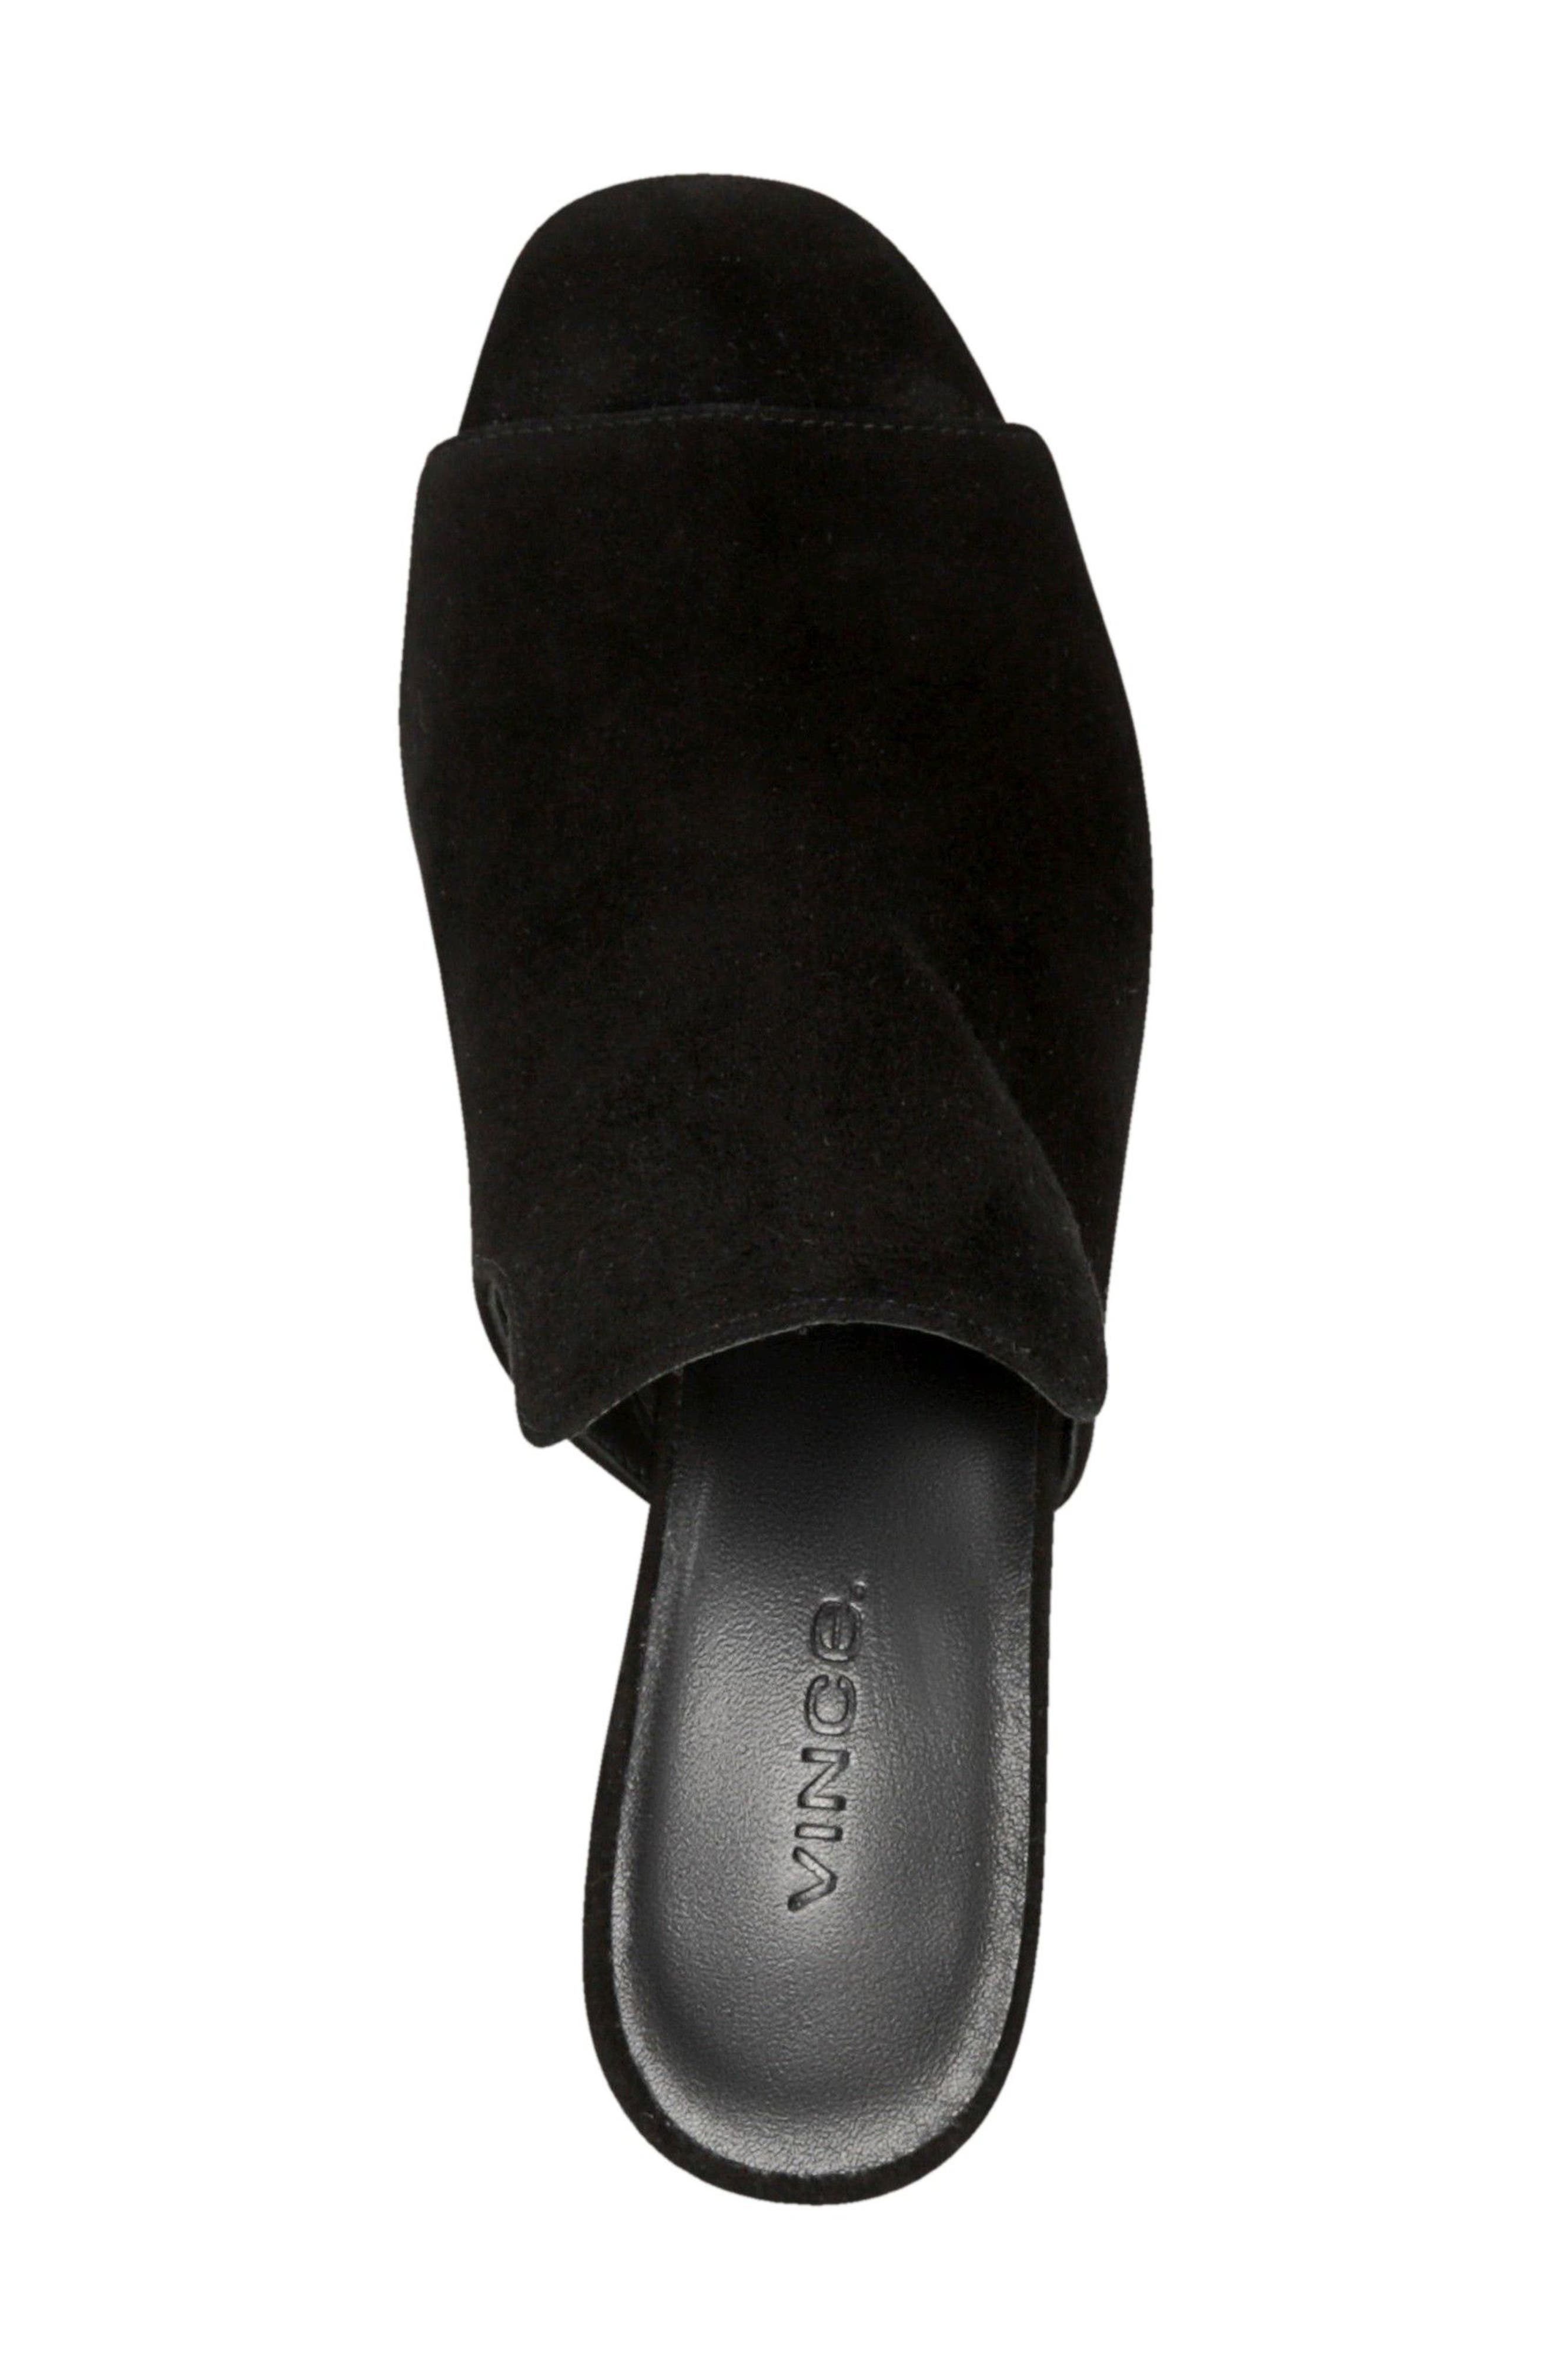 Tanay Loafer Mule,                             Alternate thumbnail 5, color,                             BLACK SUEDE LEATHER